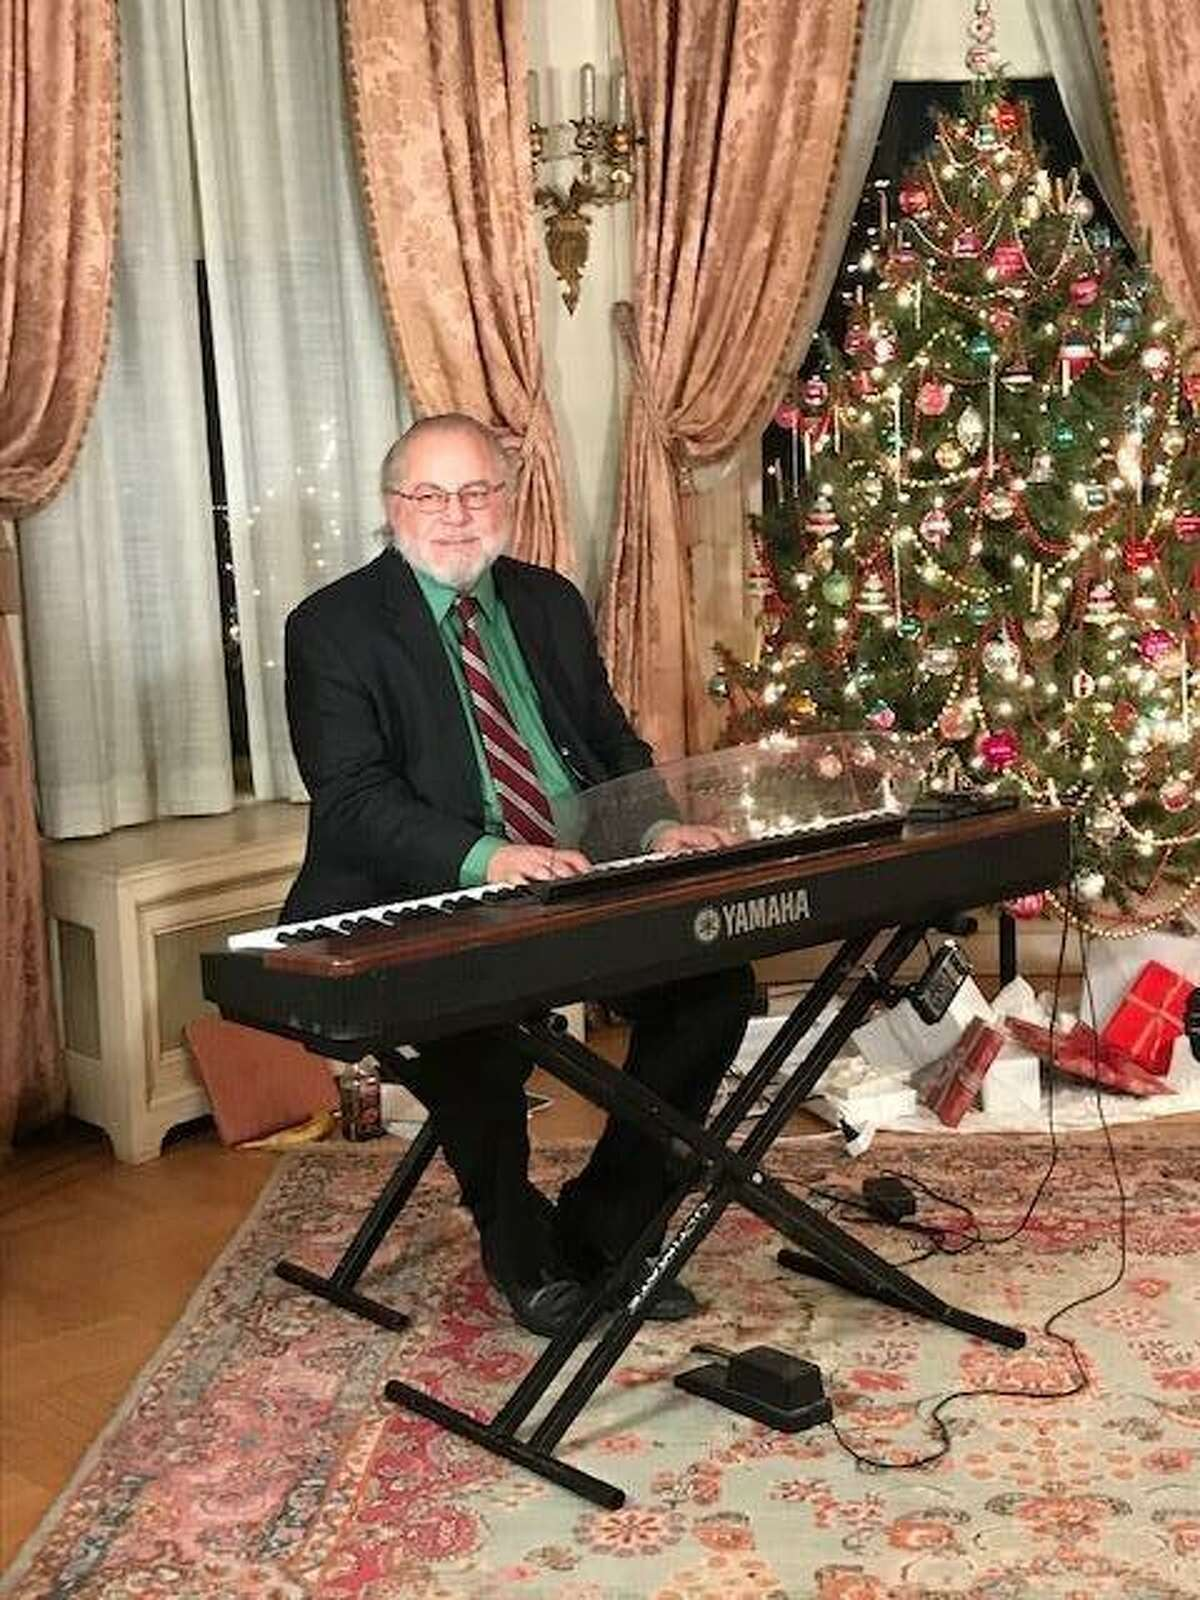 The Torrington Historical Society is presenting free storytelling and music videos on its YouTube channel, just in time for the holiday season. Above, pianist Alan Simon is performing on YouTube.